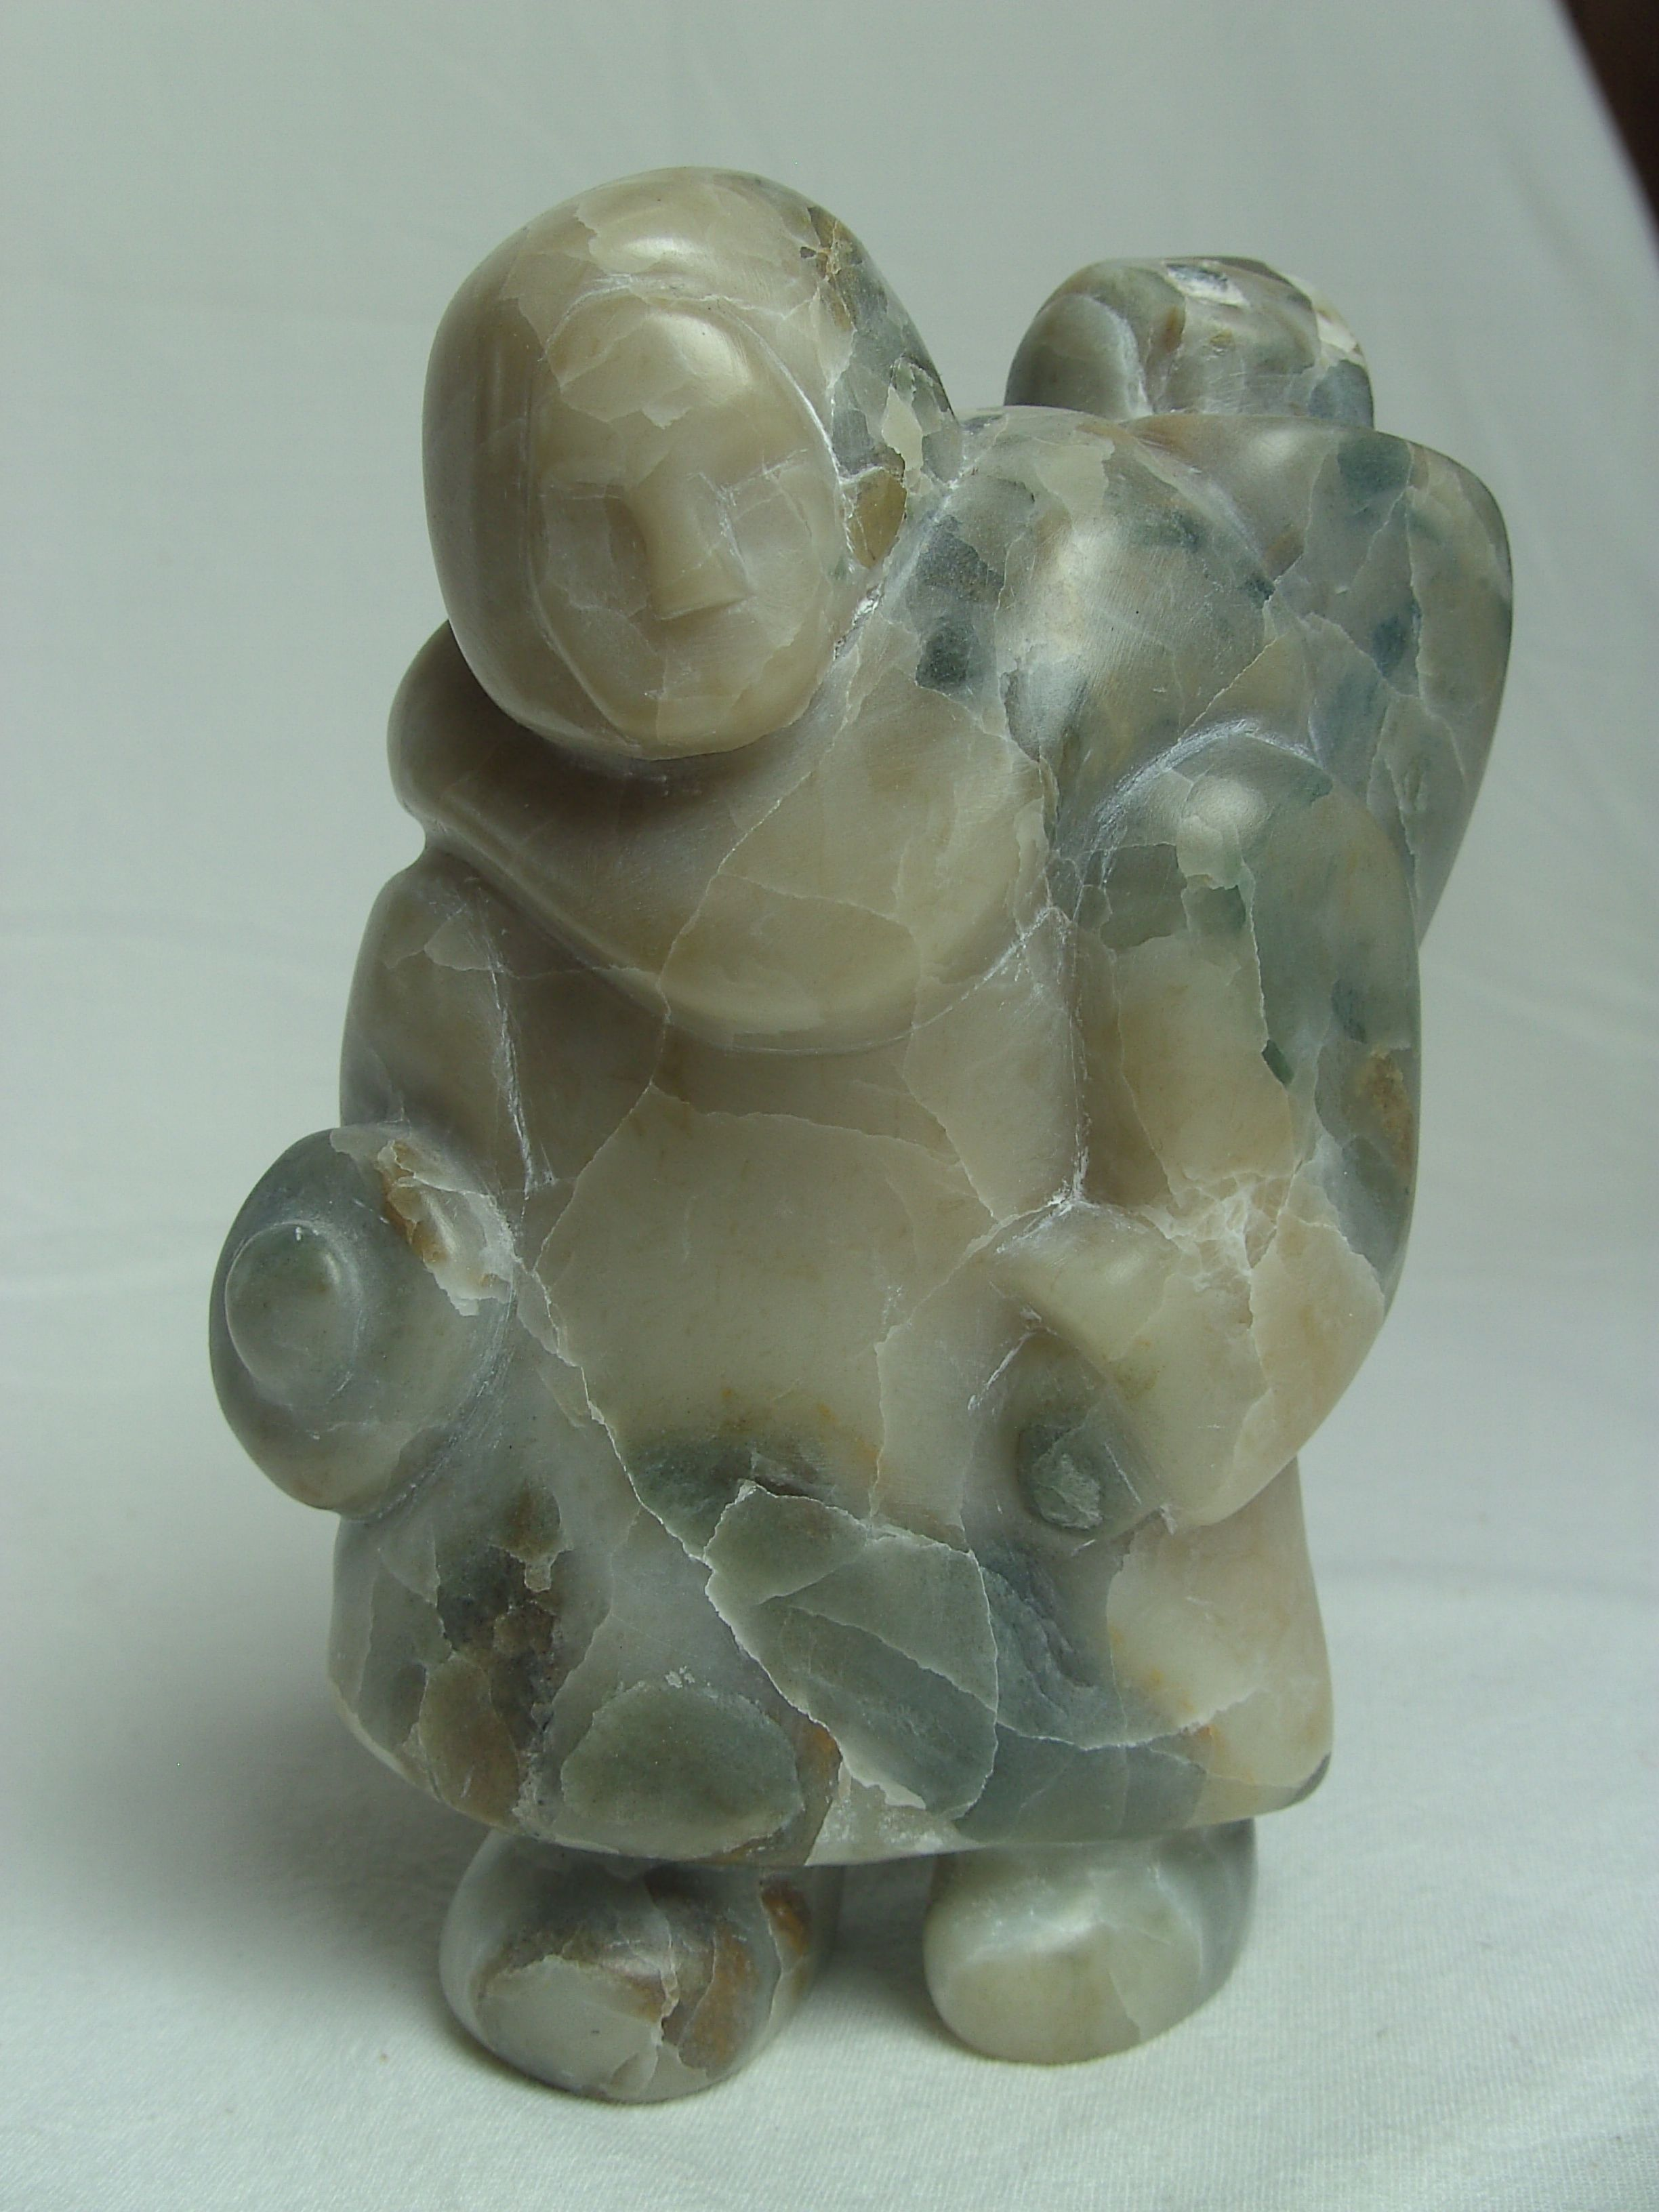 inuit soapstone carving inspiration woman with child soap stone